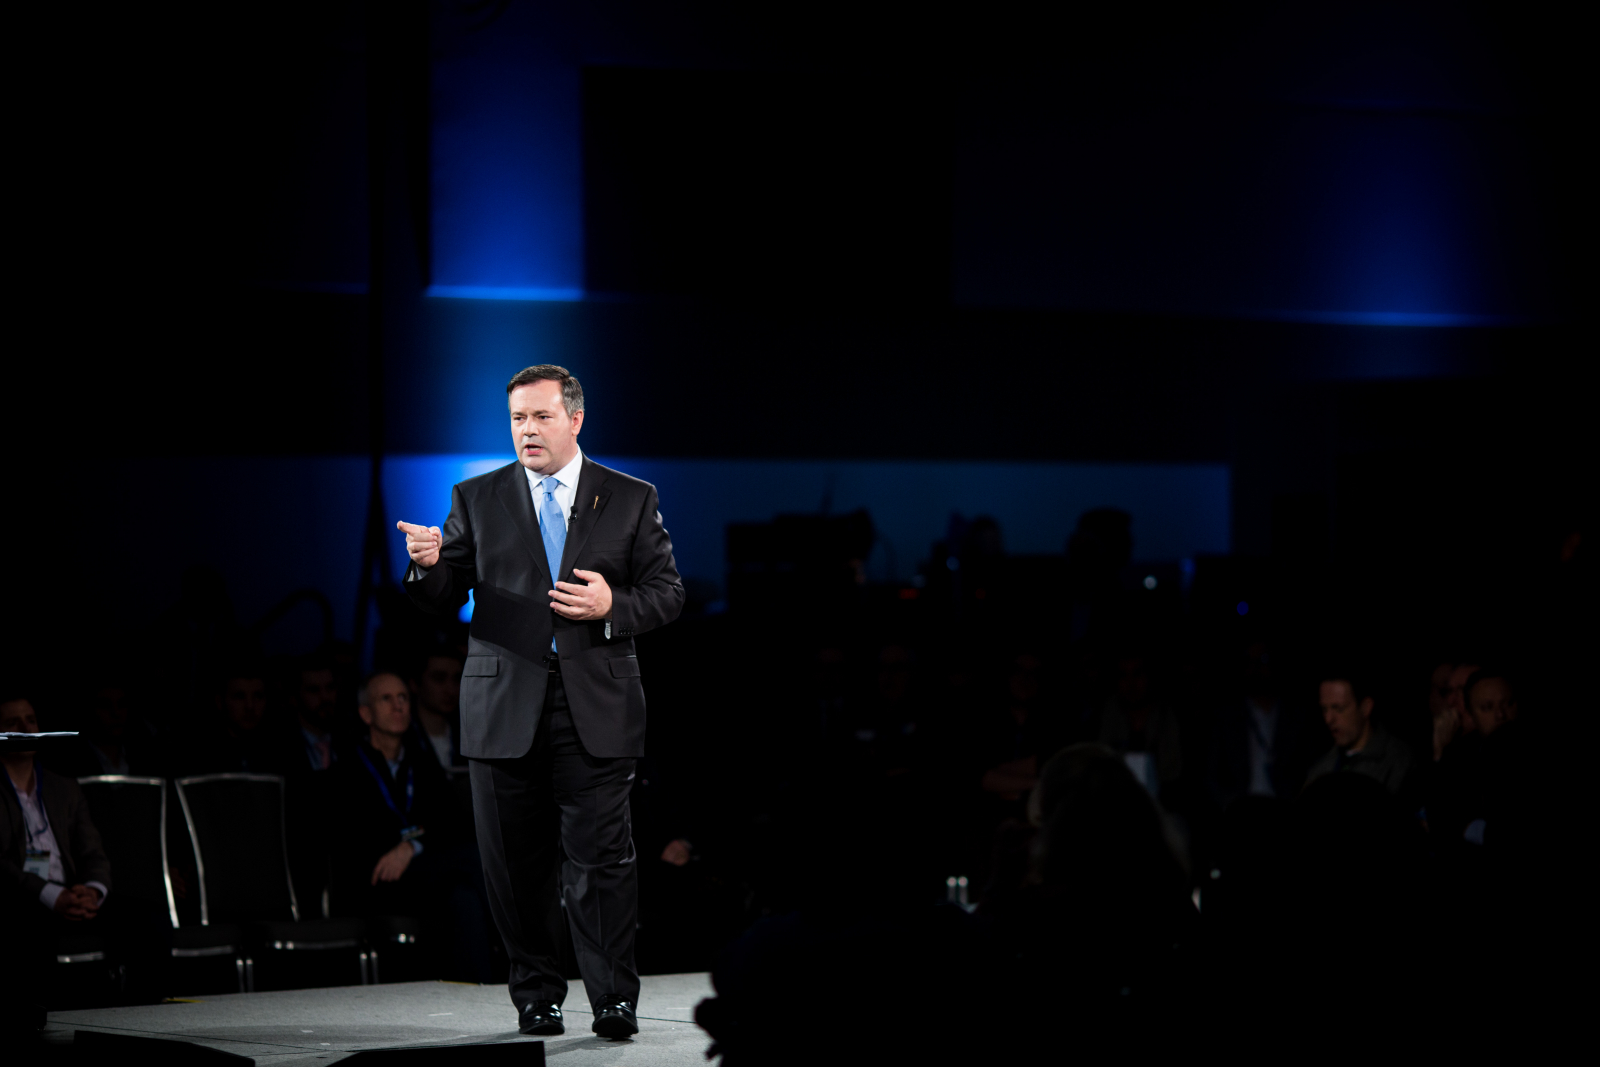 Suzuki Foundation, Tides and other groups brace for impact of Jason Kenney's new war